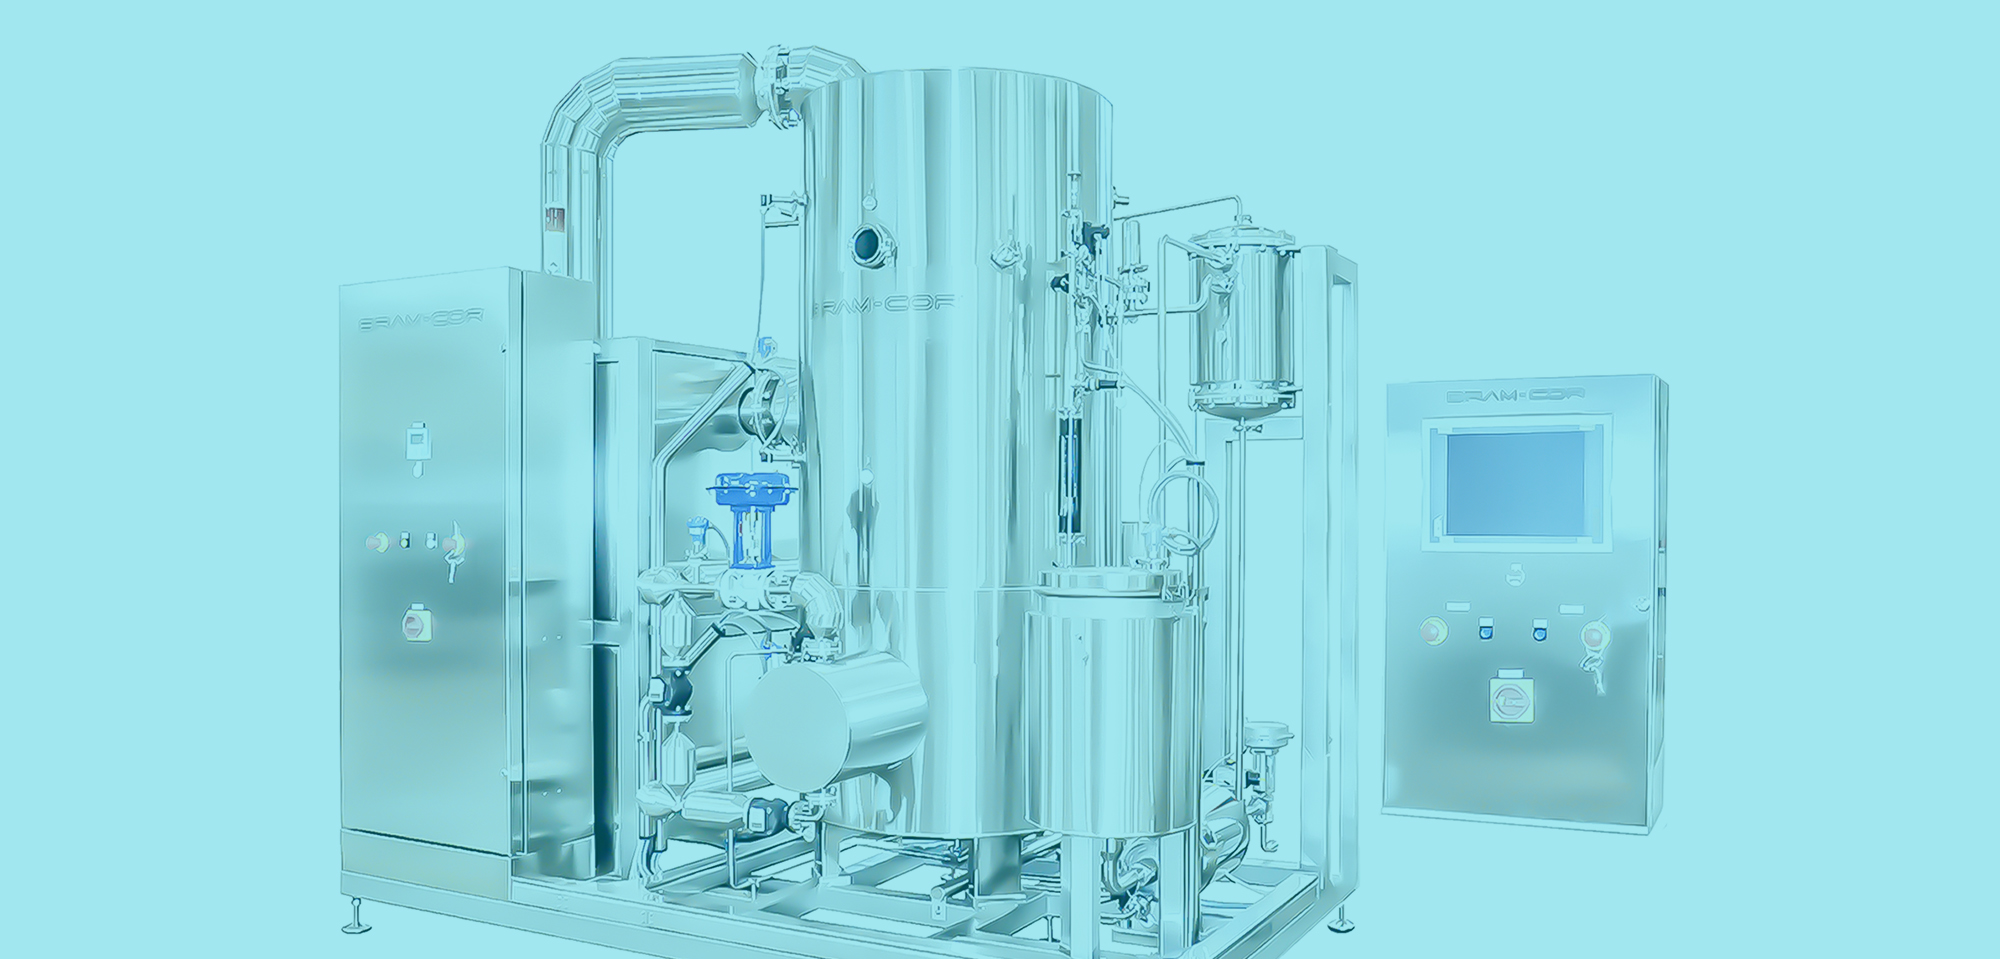 www.vapor-compression-distiller.com